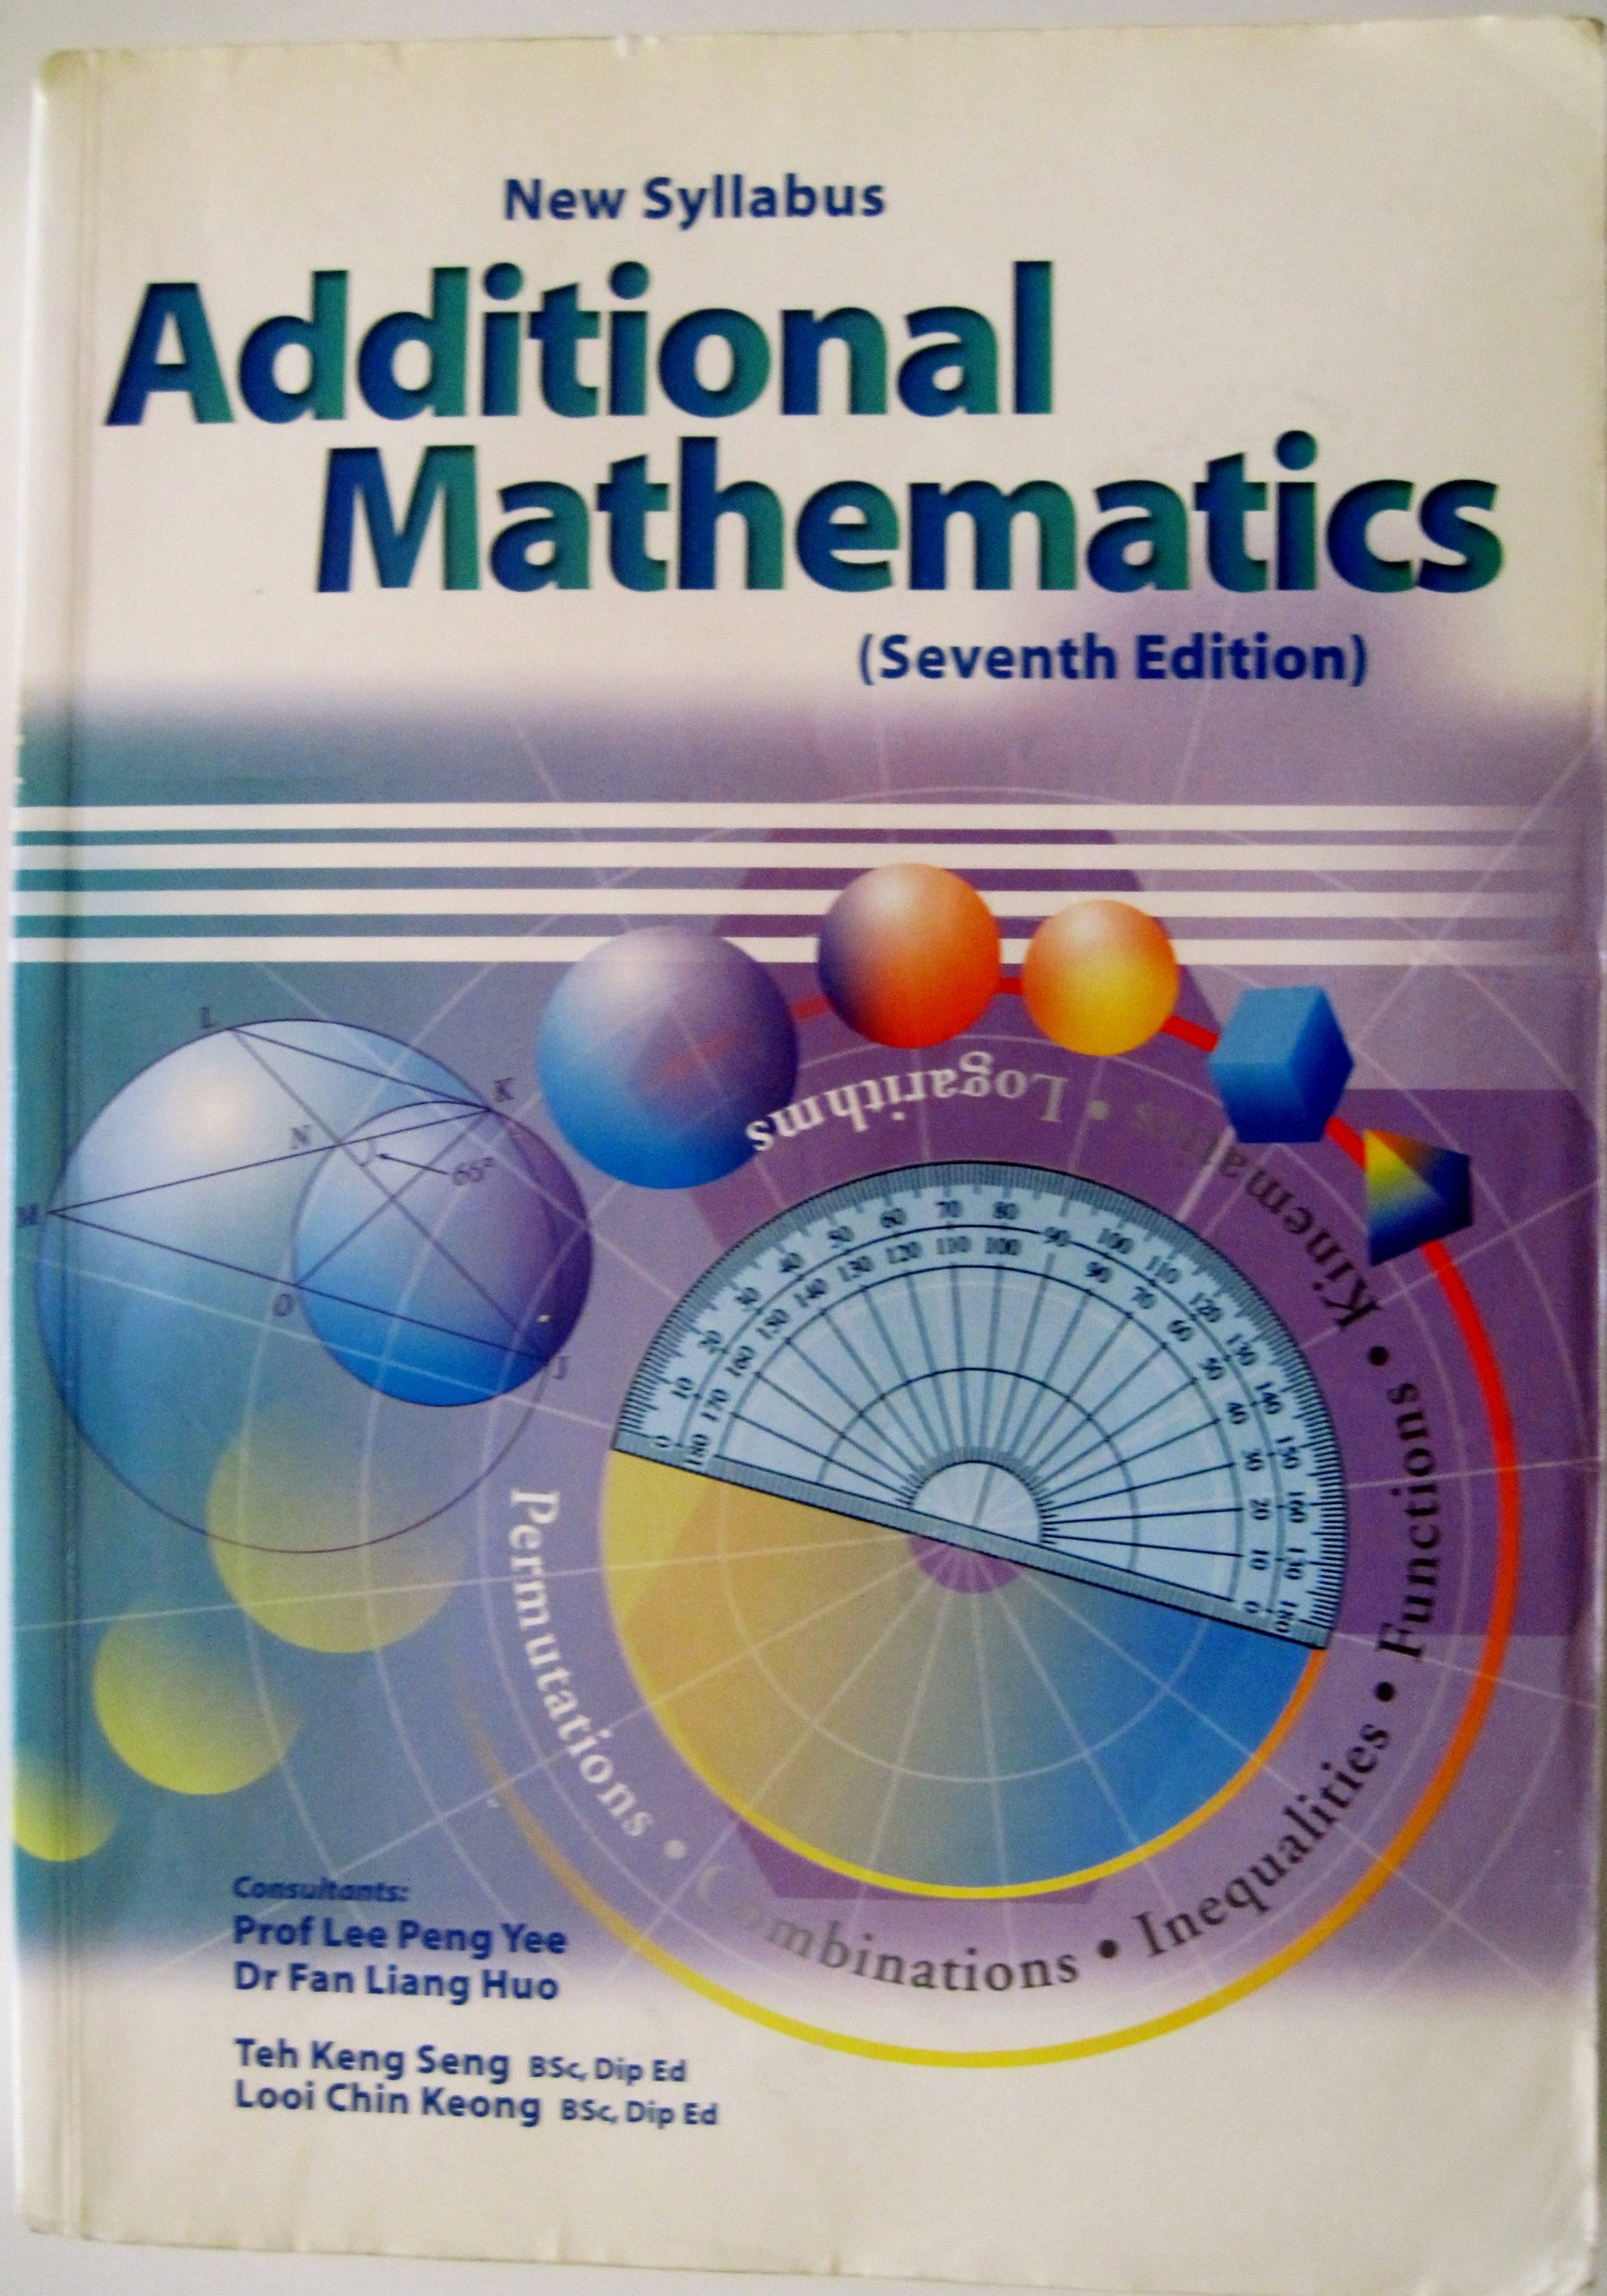 New Syllabus Additional Mathematics (7th Edition) Prof  Lee Pang Yee